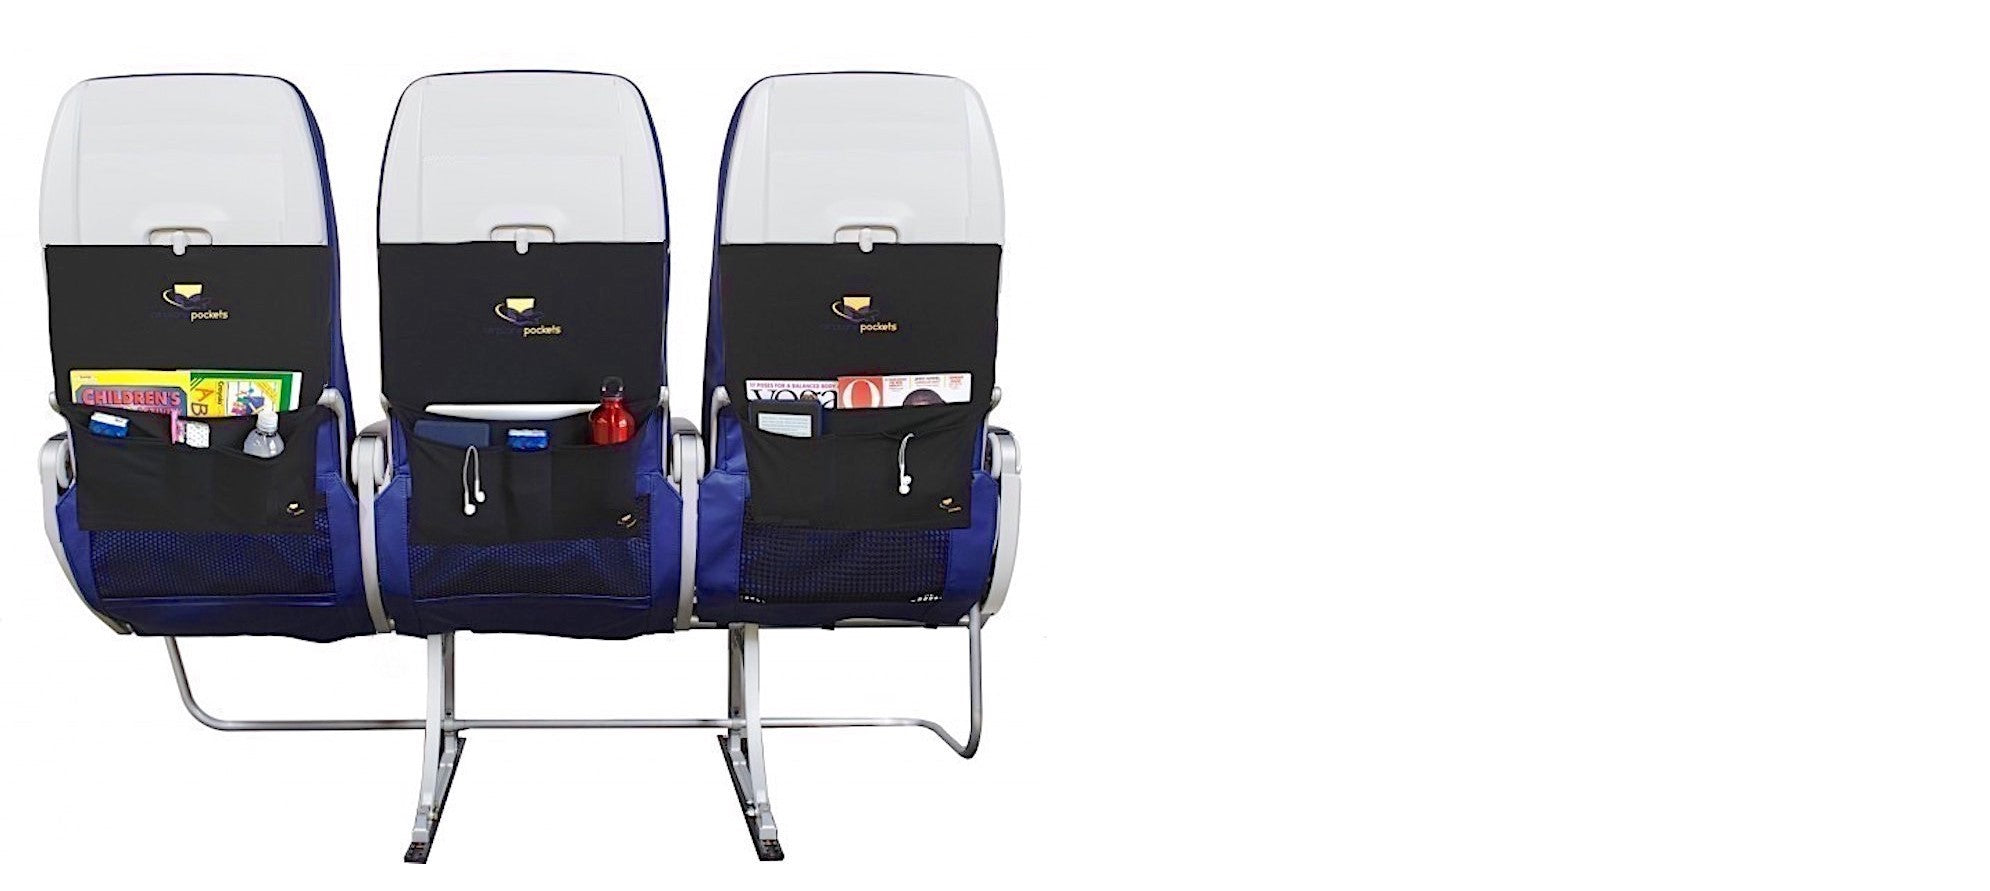 The original patented sanitary airplane tray table cover.